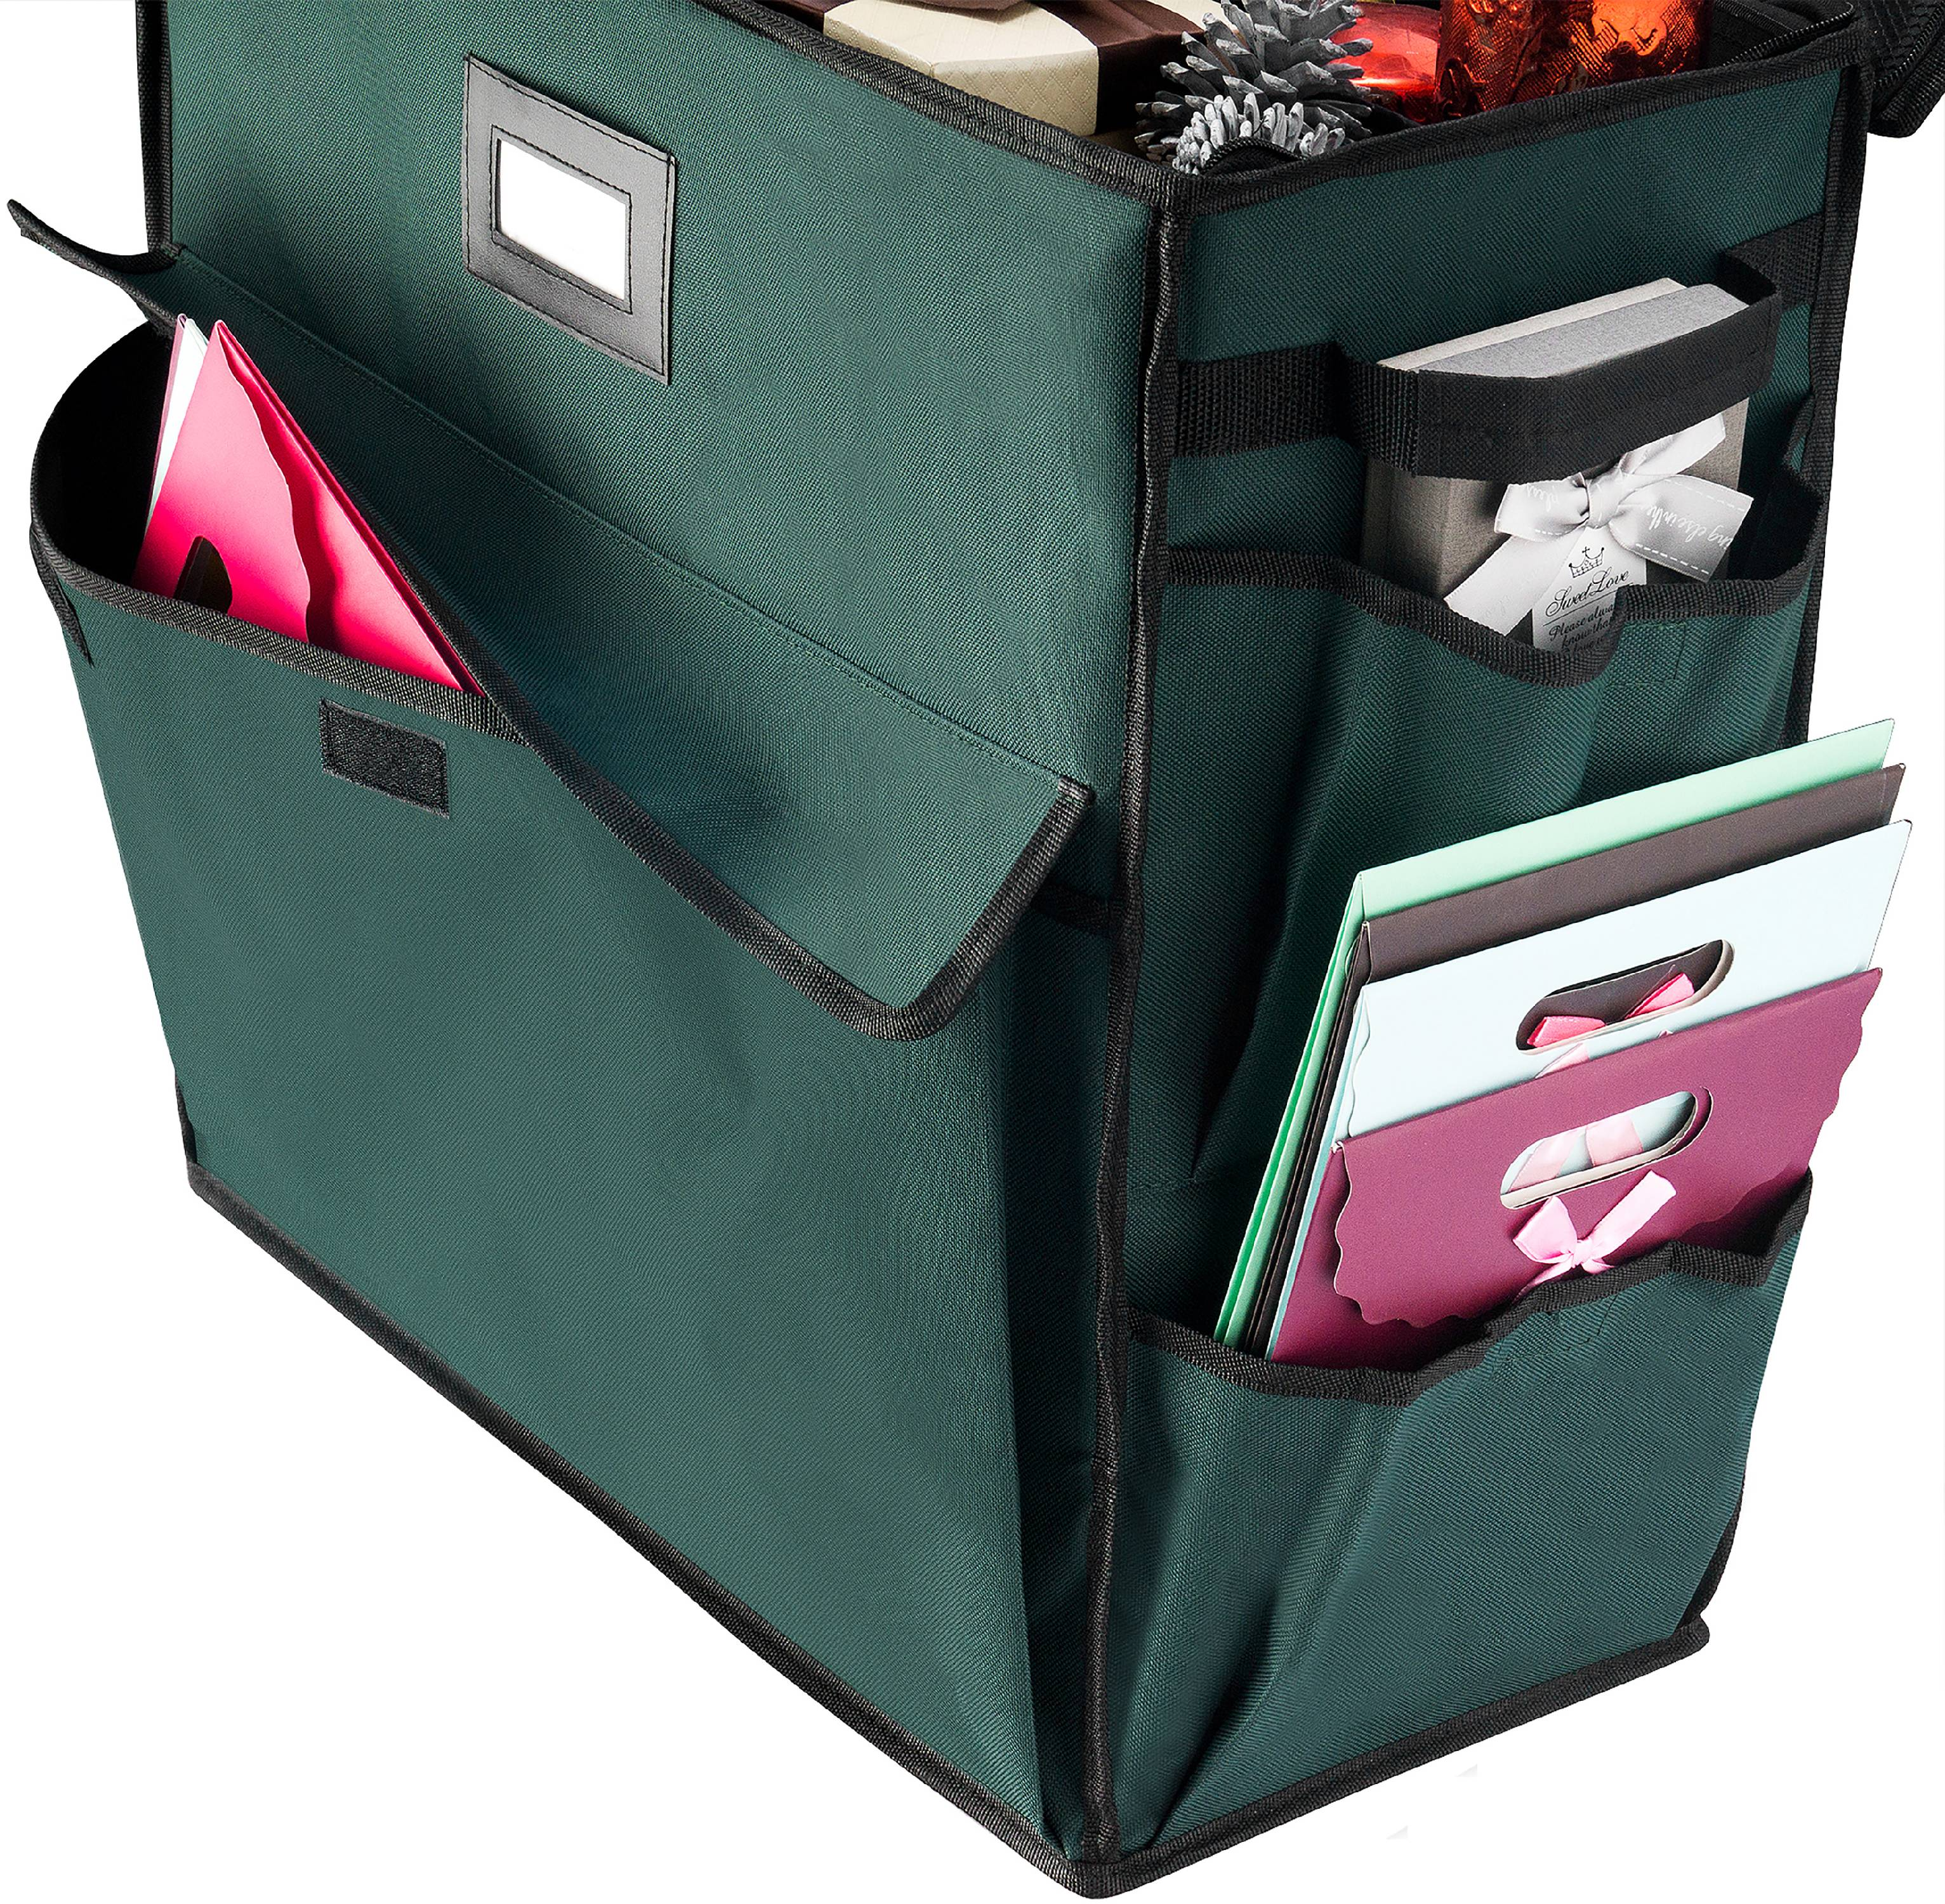 "Elf Stor Ultimate Gift Bag Organizer-Green, 21""X20.5""X10.5"""